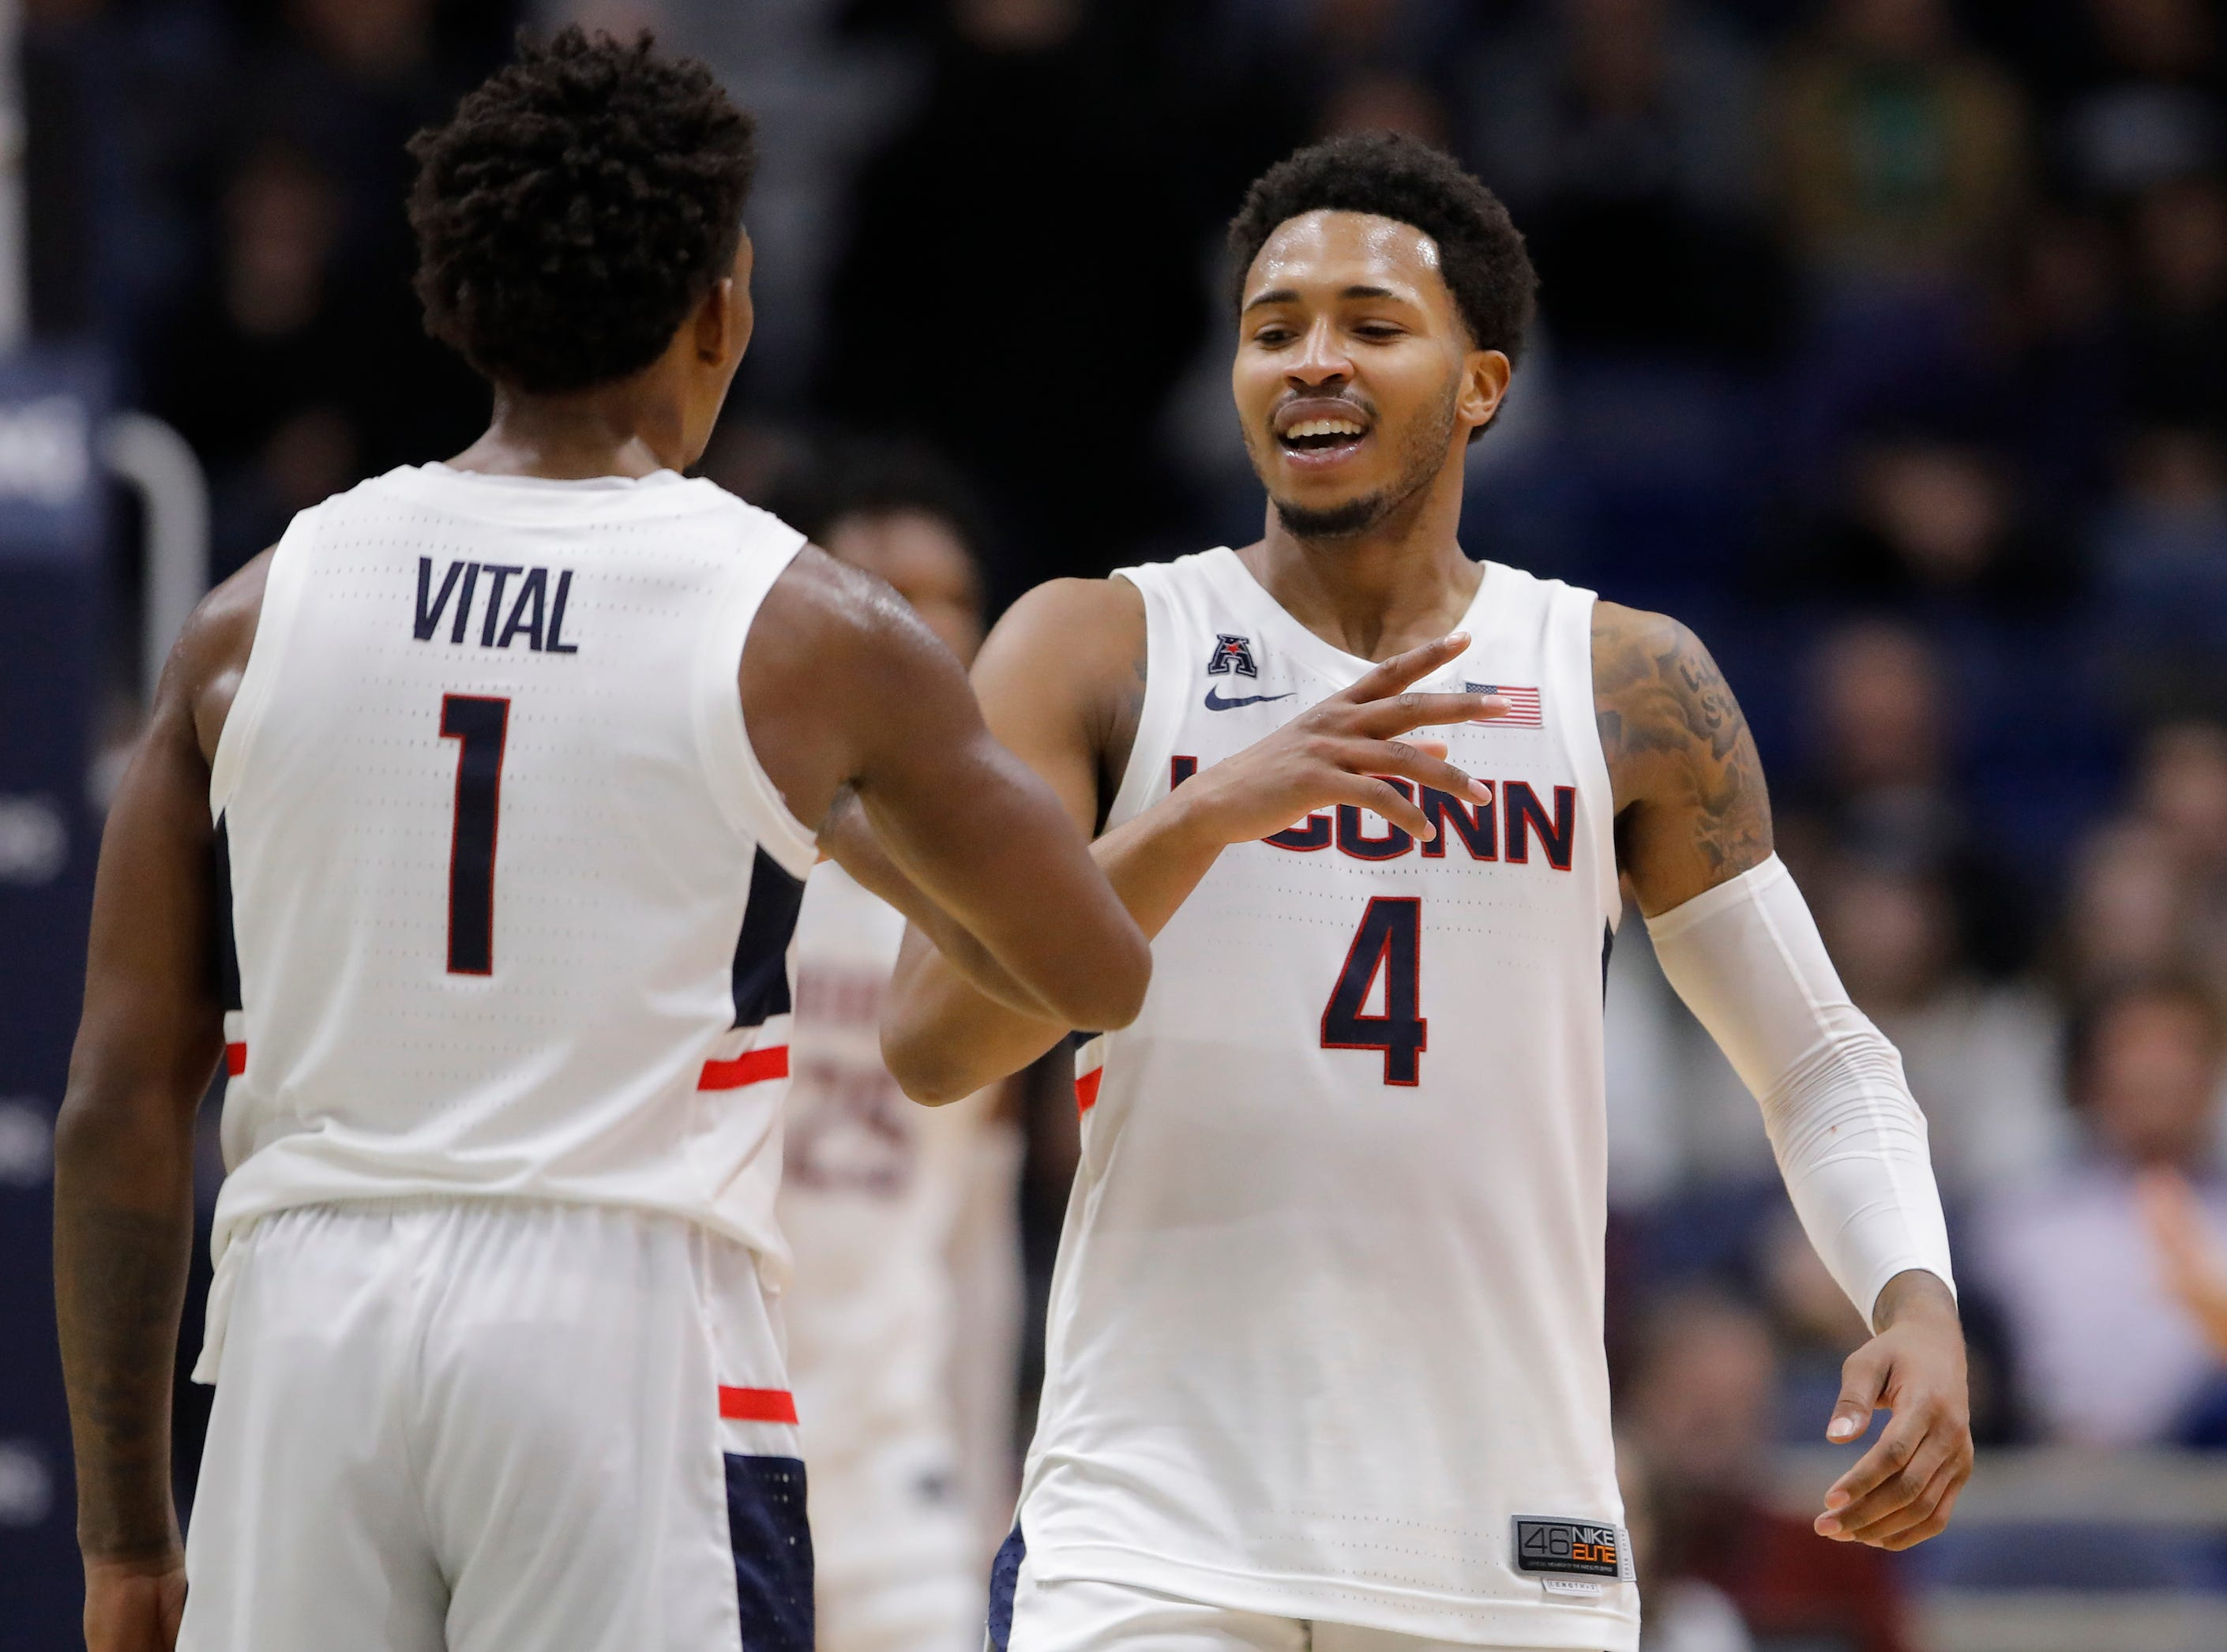 Nov 20, 2018; Storrs, CT, USA; Connecticut Huskies guard Jalen Adams (4) reacts with guard Christian Vital (1) after a play against the Cornell Big Red in the second half at XL Center. UConn defeated Cornell 91-74. Mandatory Credit: David Butler II-USA TODAY Sports